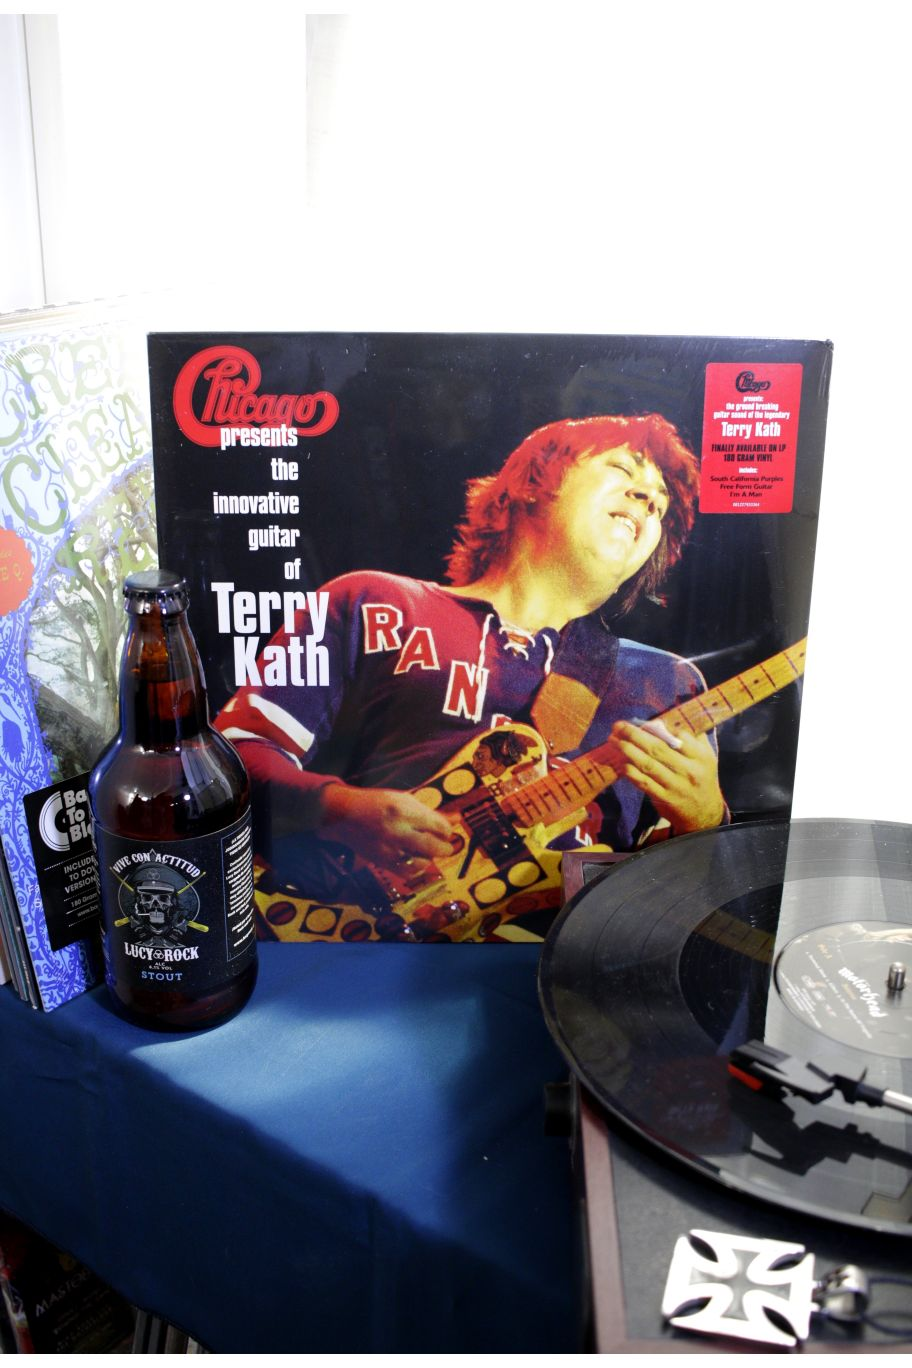 VINILO CHICAGO - CHICAGO PRESENTS INNOVATIVE GUITAR OF TERRY